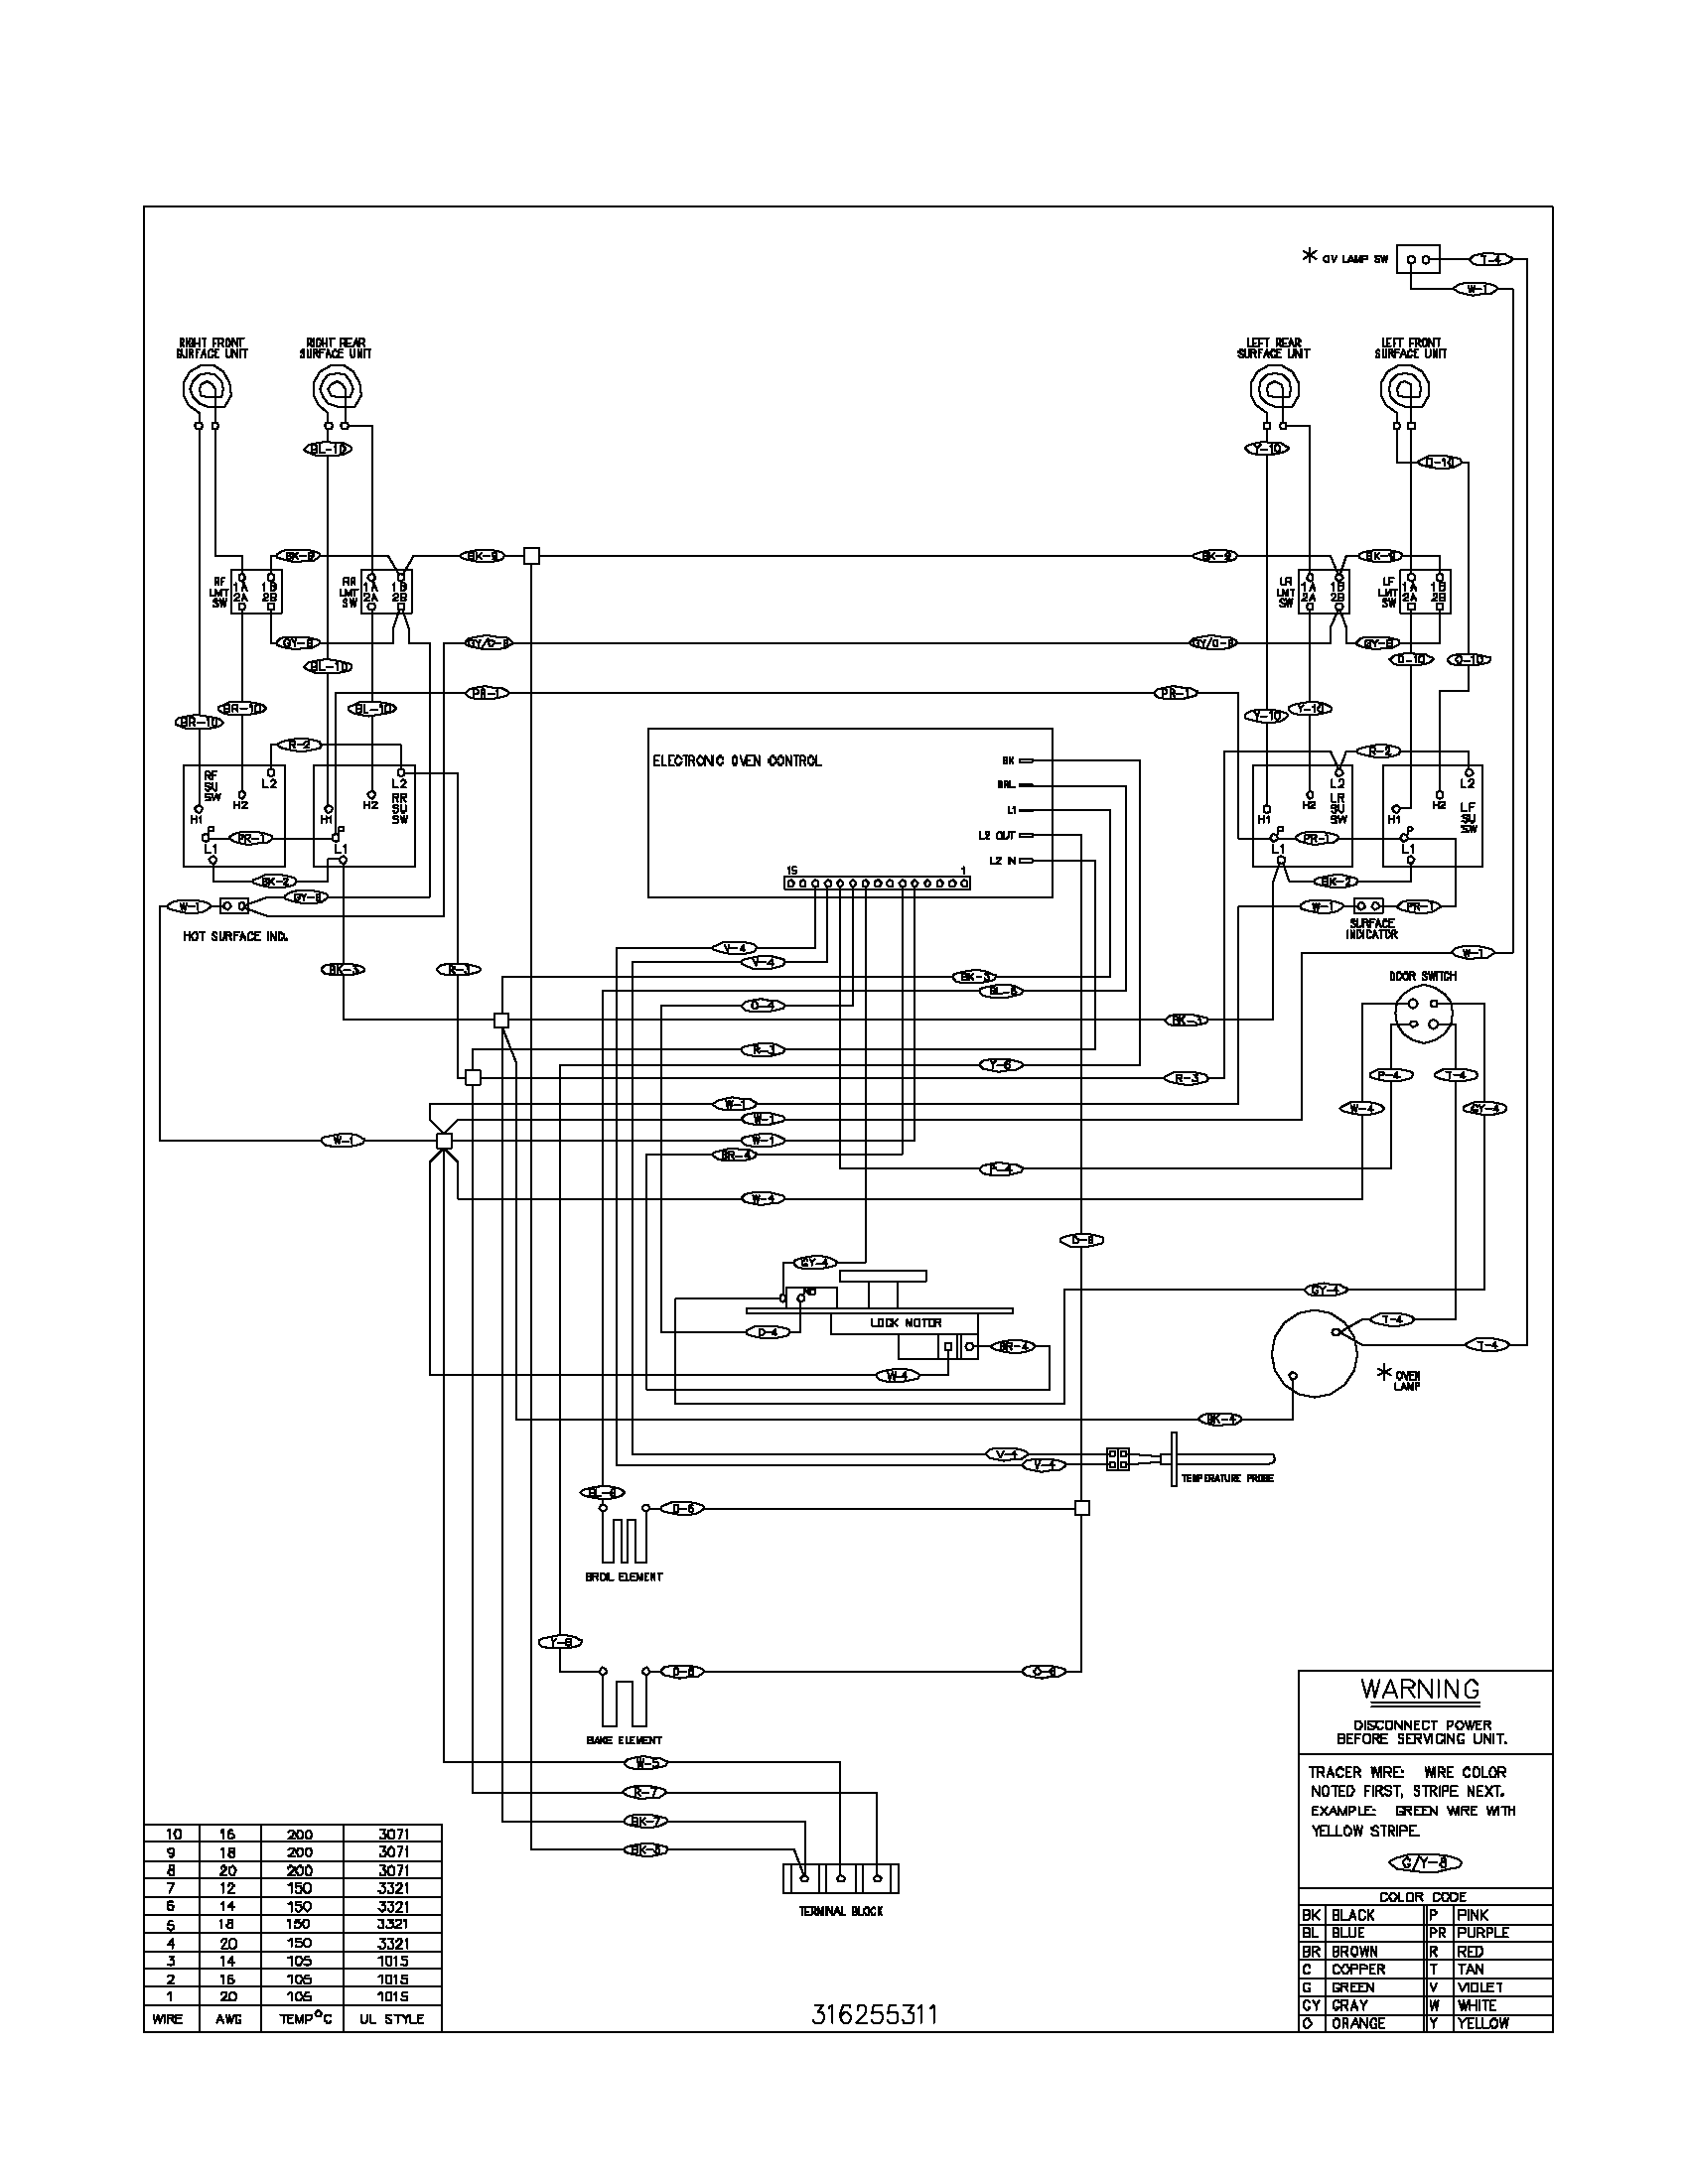 220 wiring diagram stove top wiring diagram database rh 4 enfalixe cafe alte feuerwehr de wiring diagram for stove outlet wiring diagram for electric stove